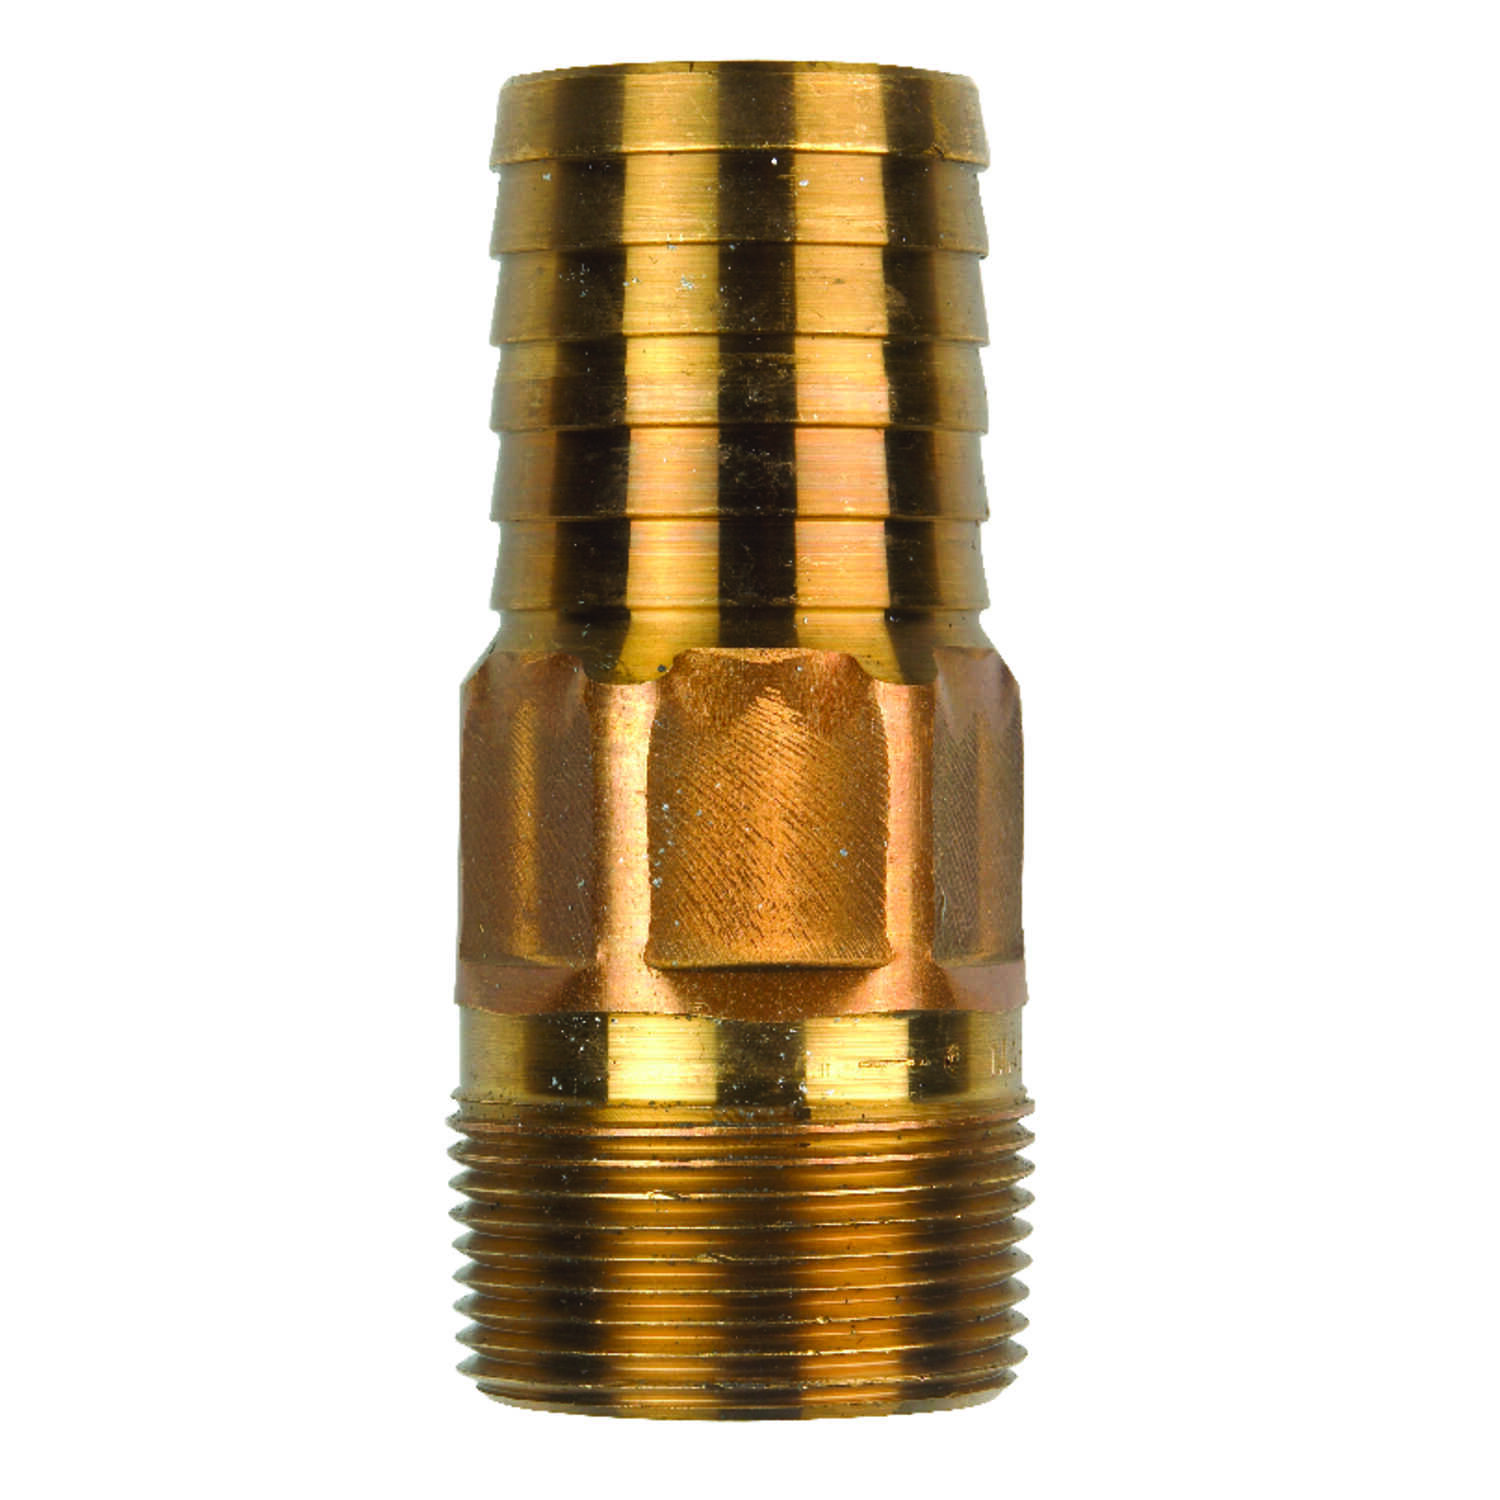 Campbell  Red Brass  Male Adapter  1-1/4 in.  x 4 in. L